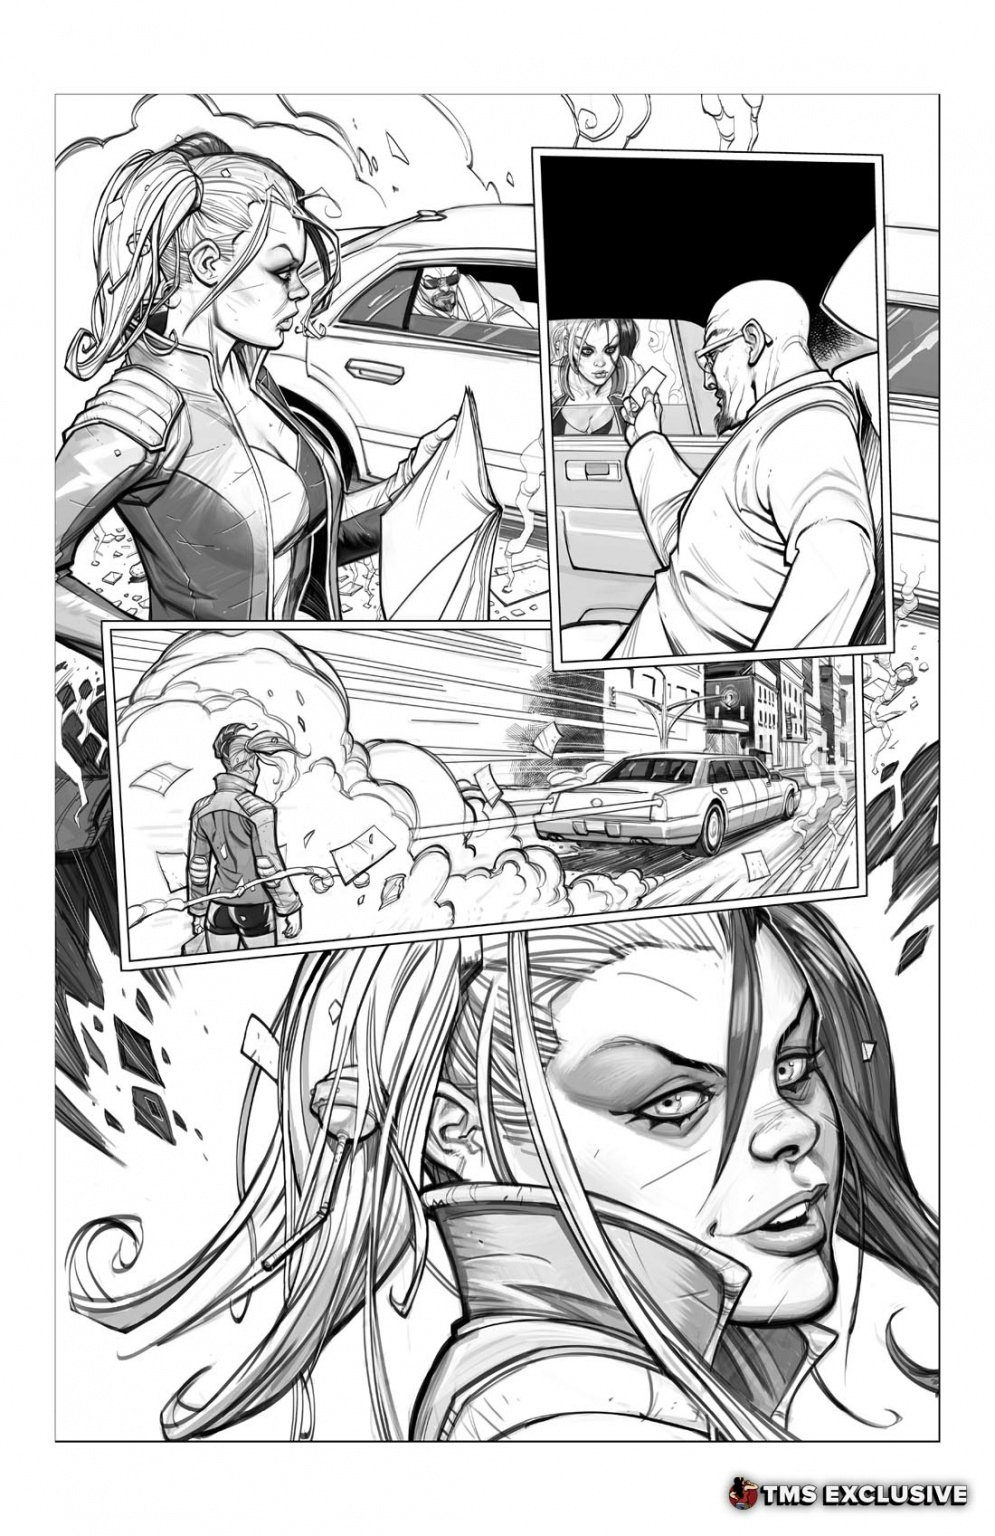 Harley Quinn Vol. 1: Hot in the City Sketches & Layouts